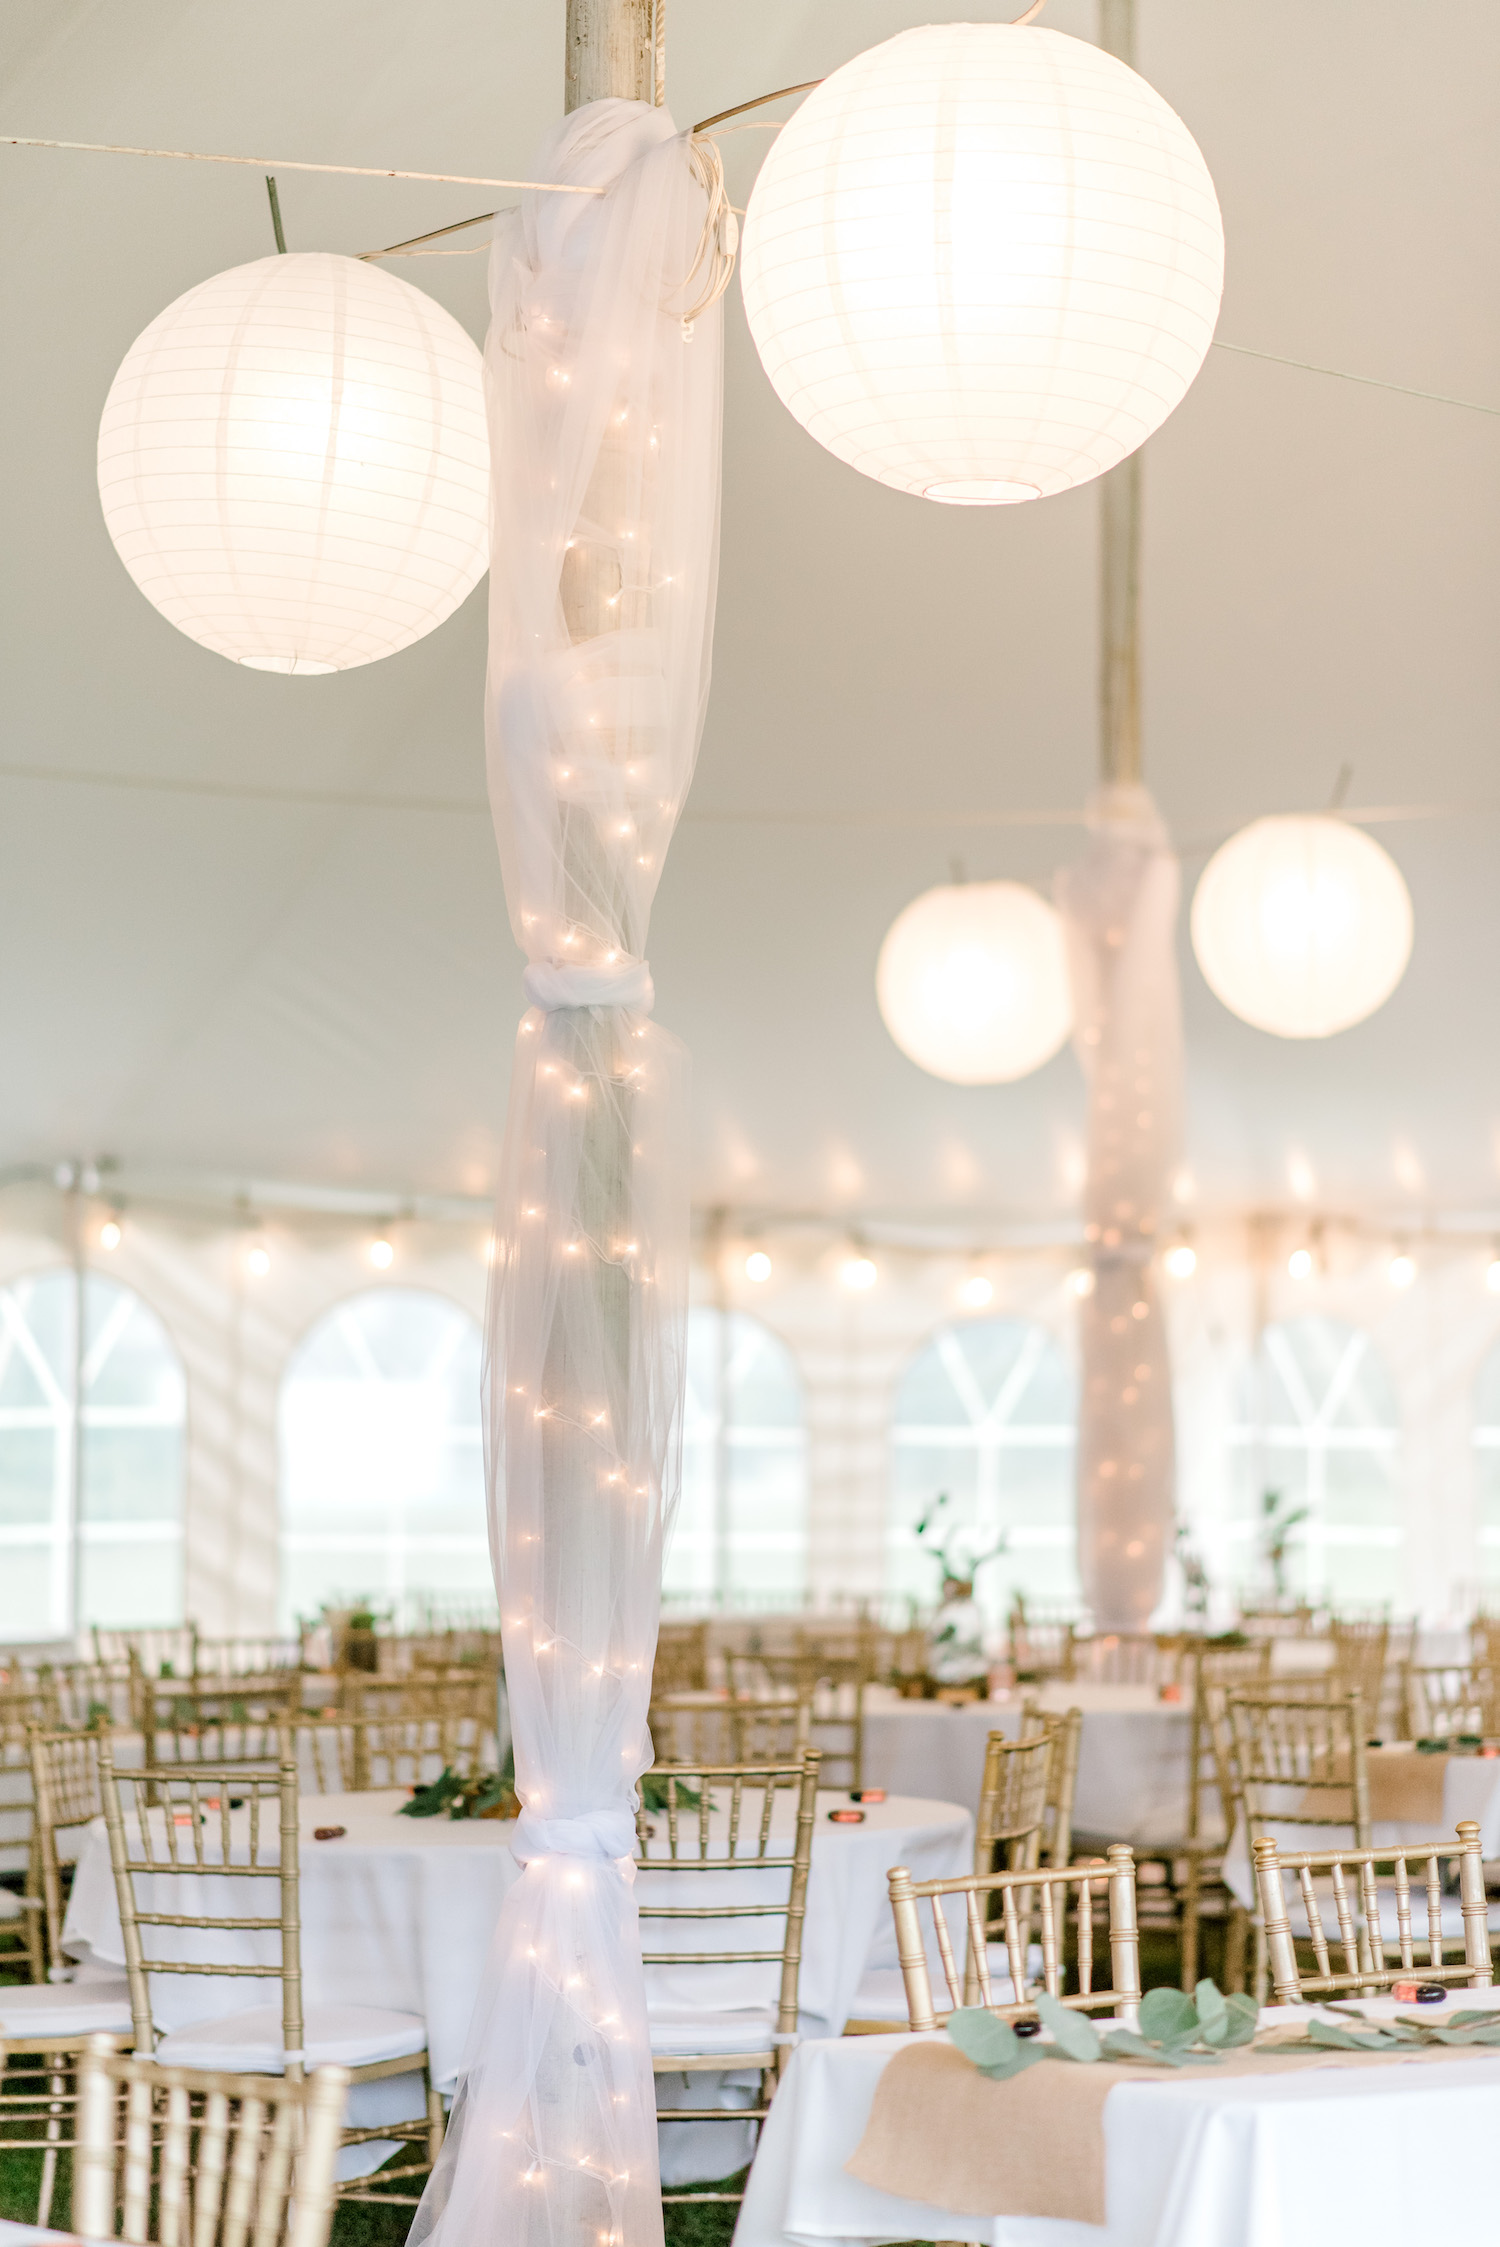 Decor under tent for Wallinwood Springs Golf Course wedding